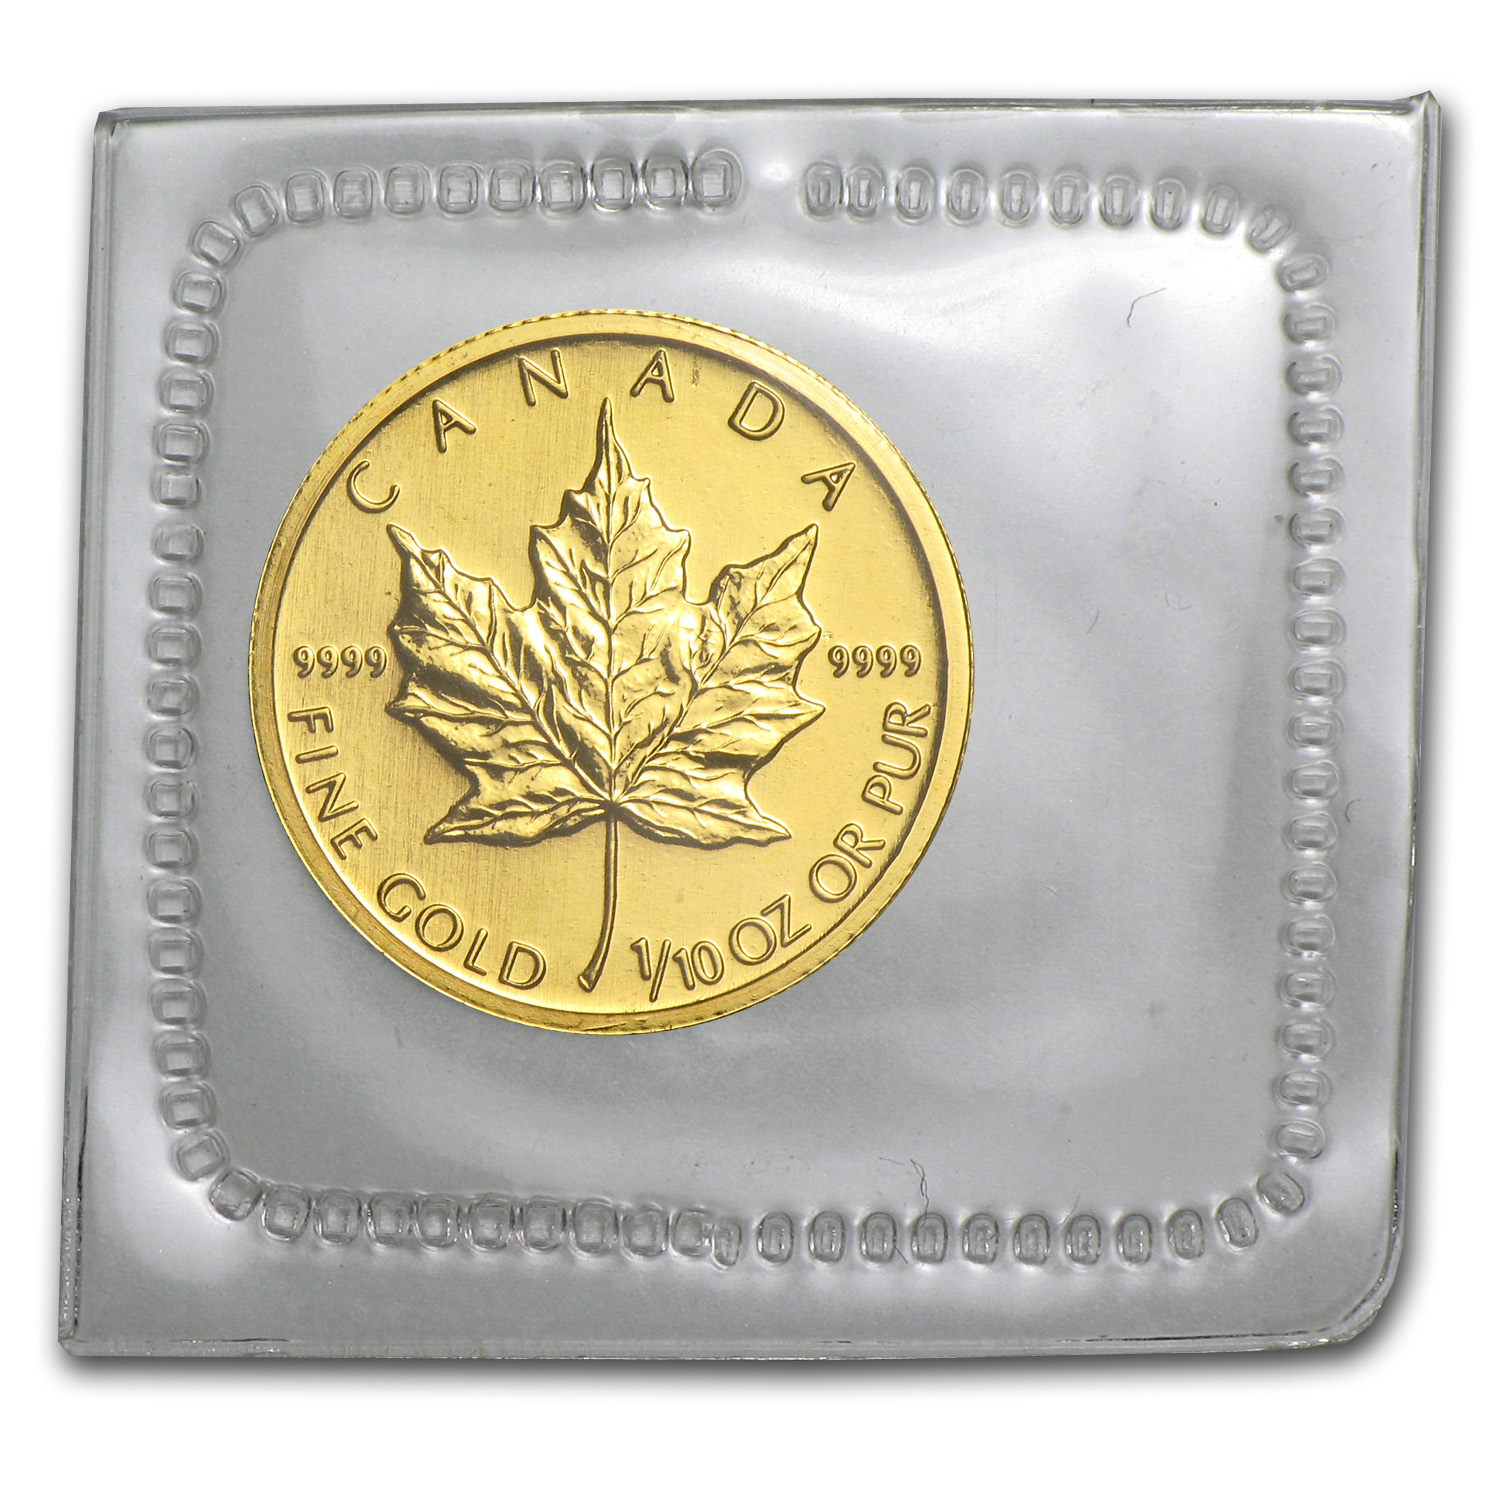 2009 1/10 oz Gold Canadian Maple Leaf